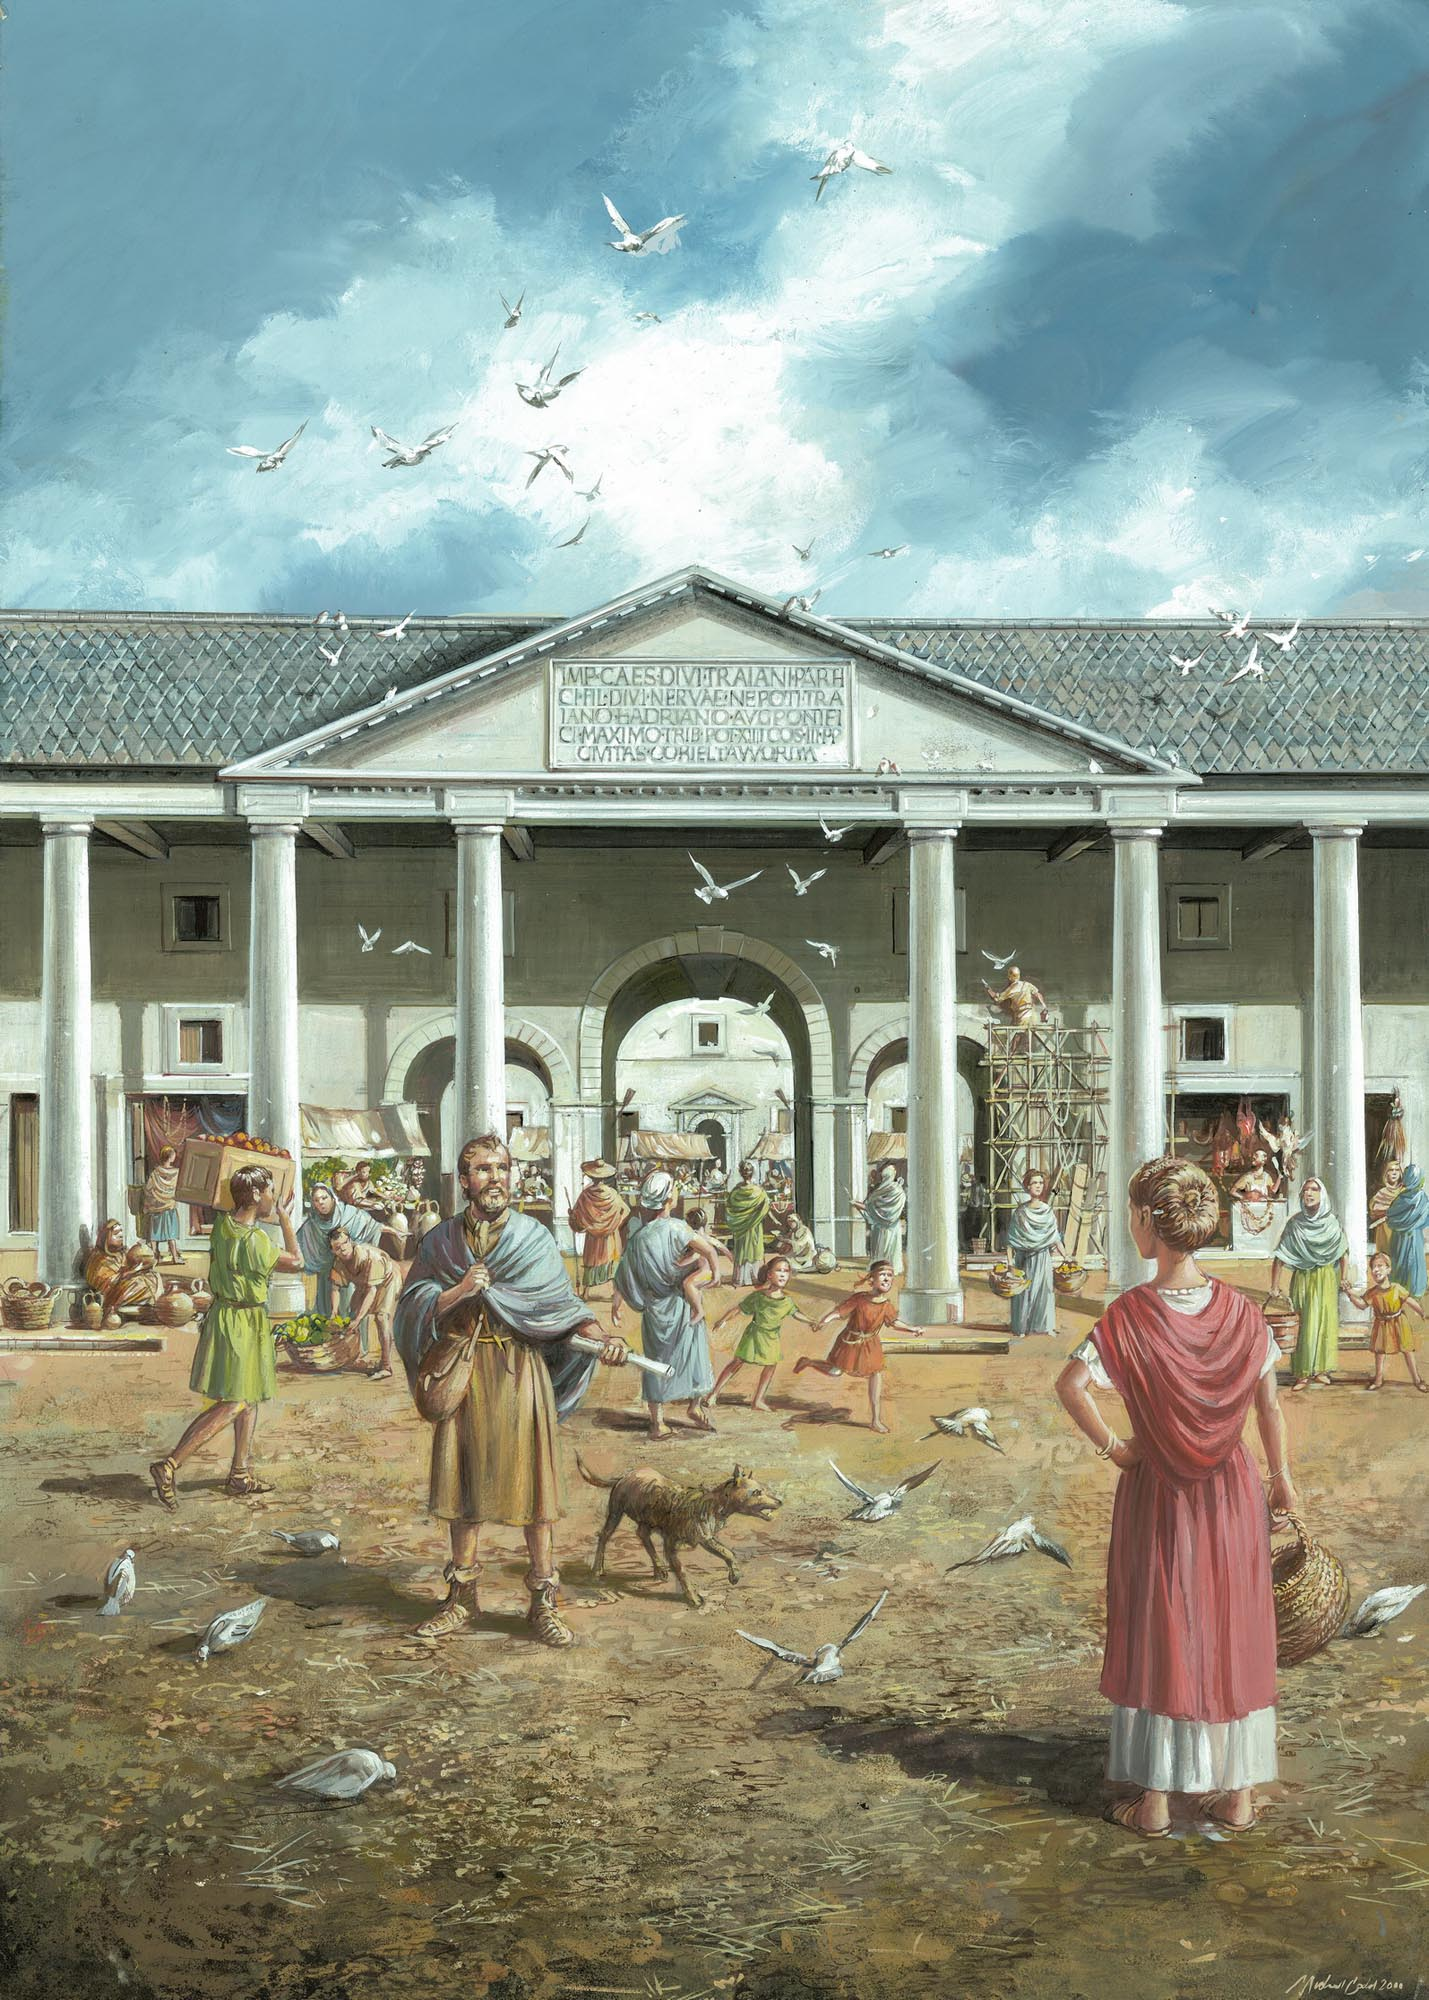 The entrance to the Roman forum as it may have looked during the 2nd and 3rd century CE - Mike Codd / University of Leicester Archaeological Services